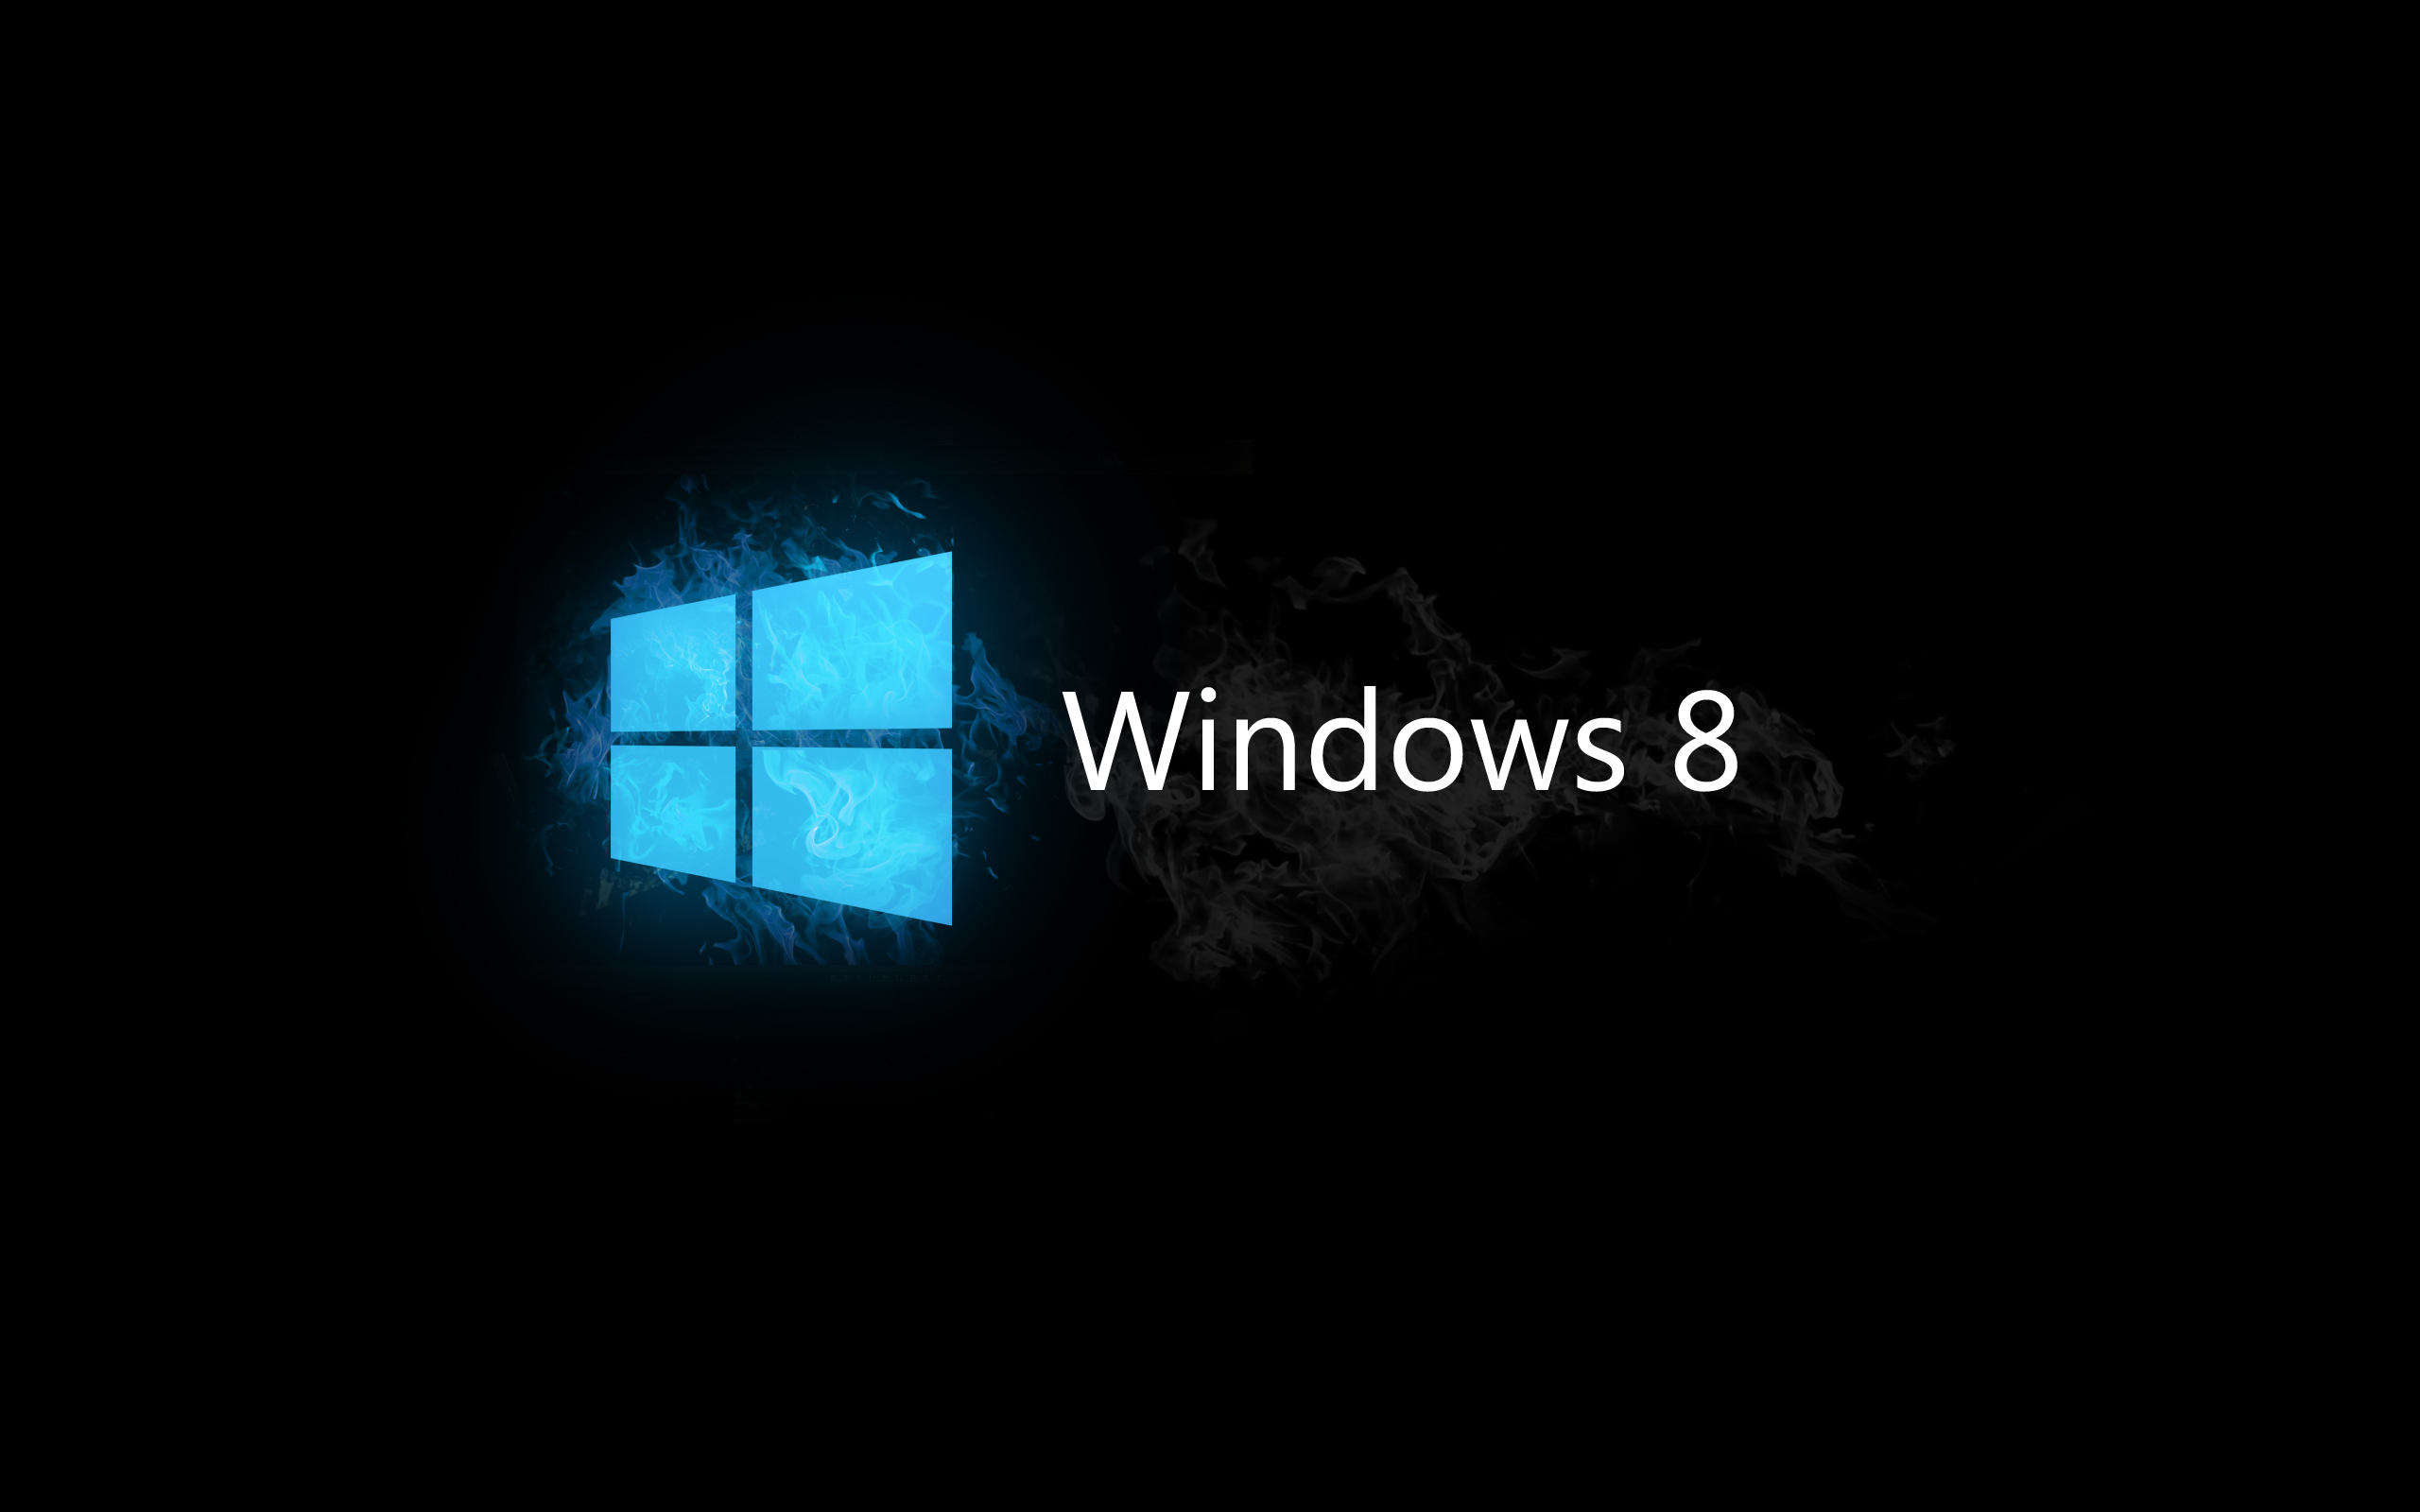 Windows 8 HD Wallpaper Dark Wallpaper